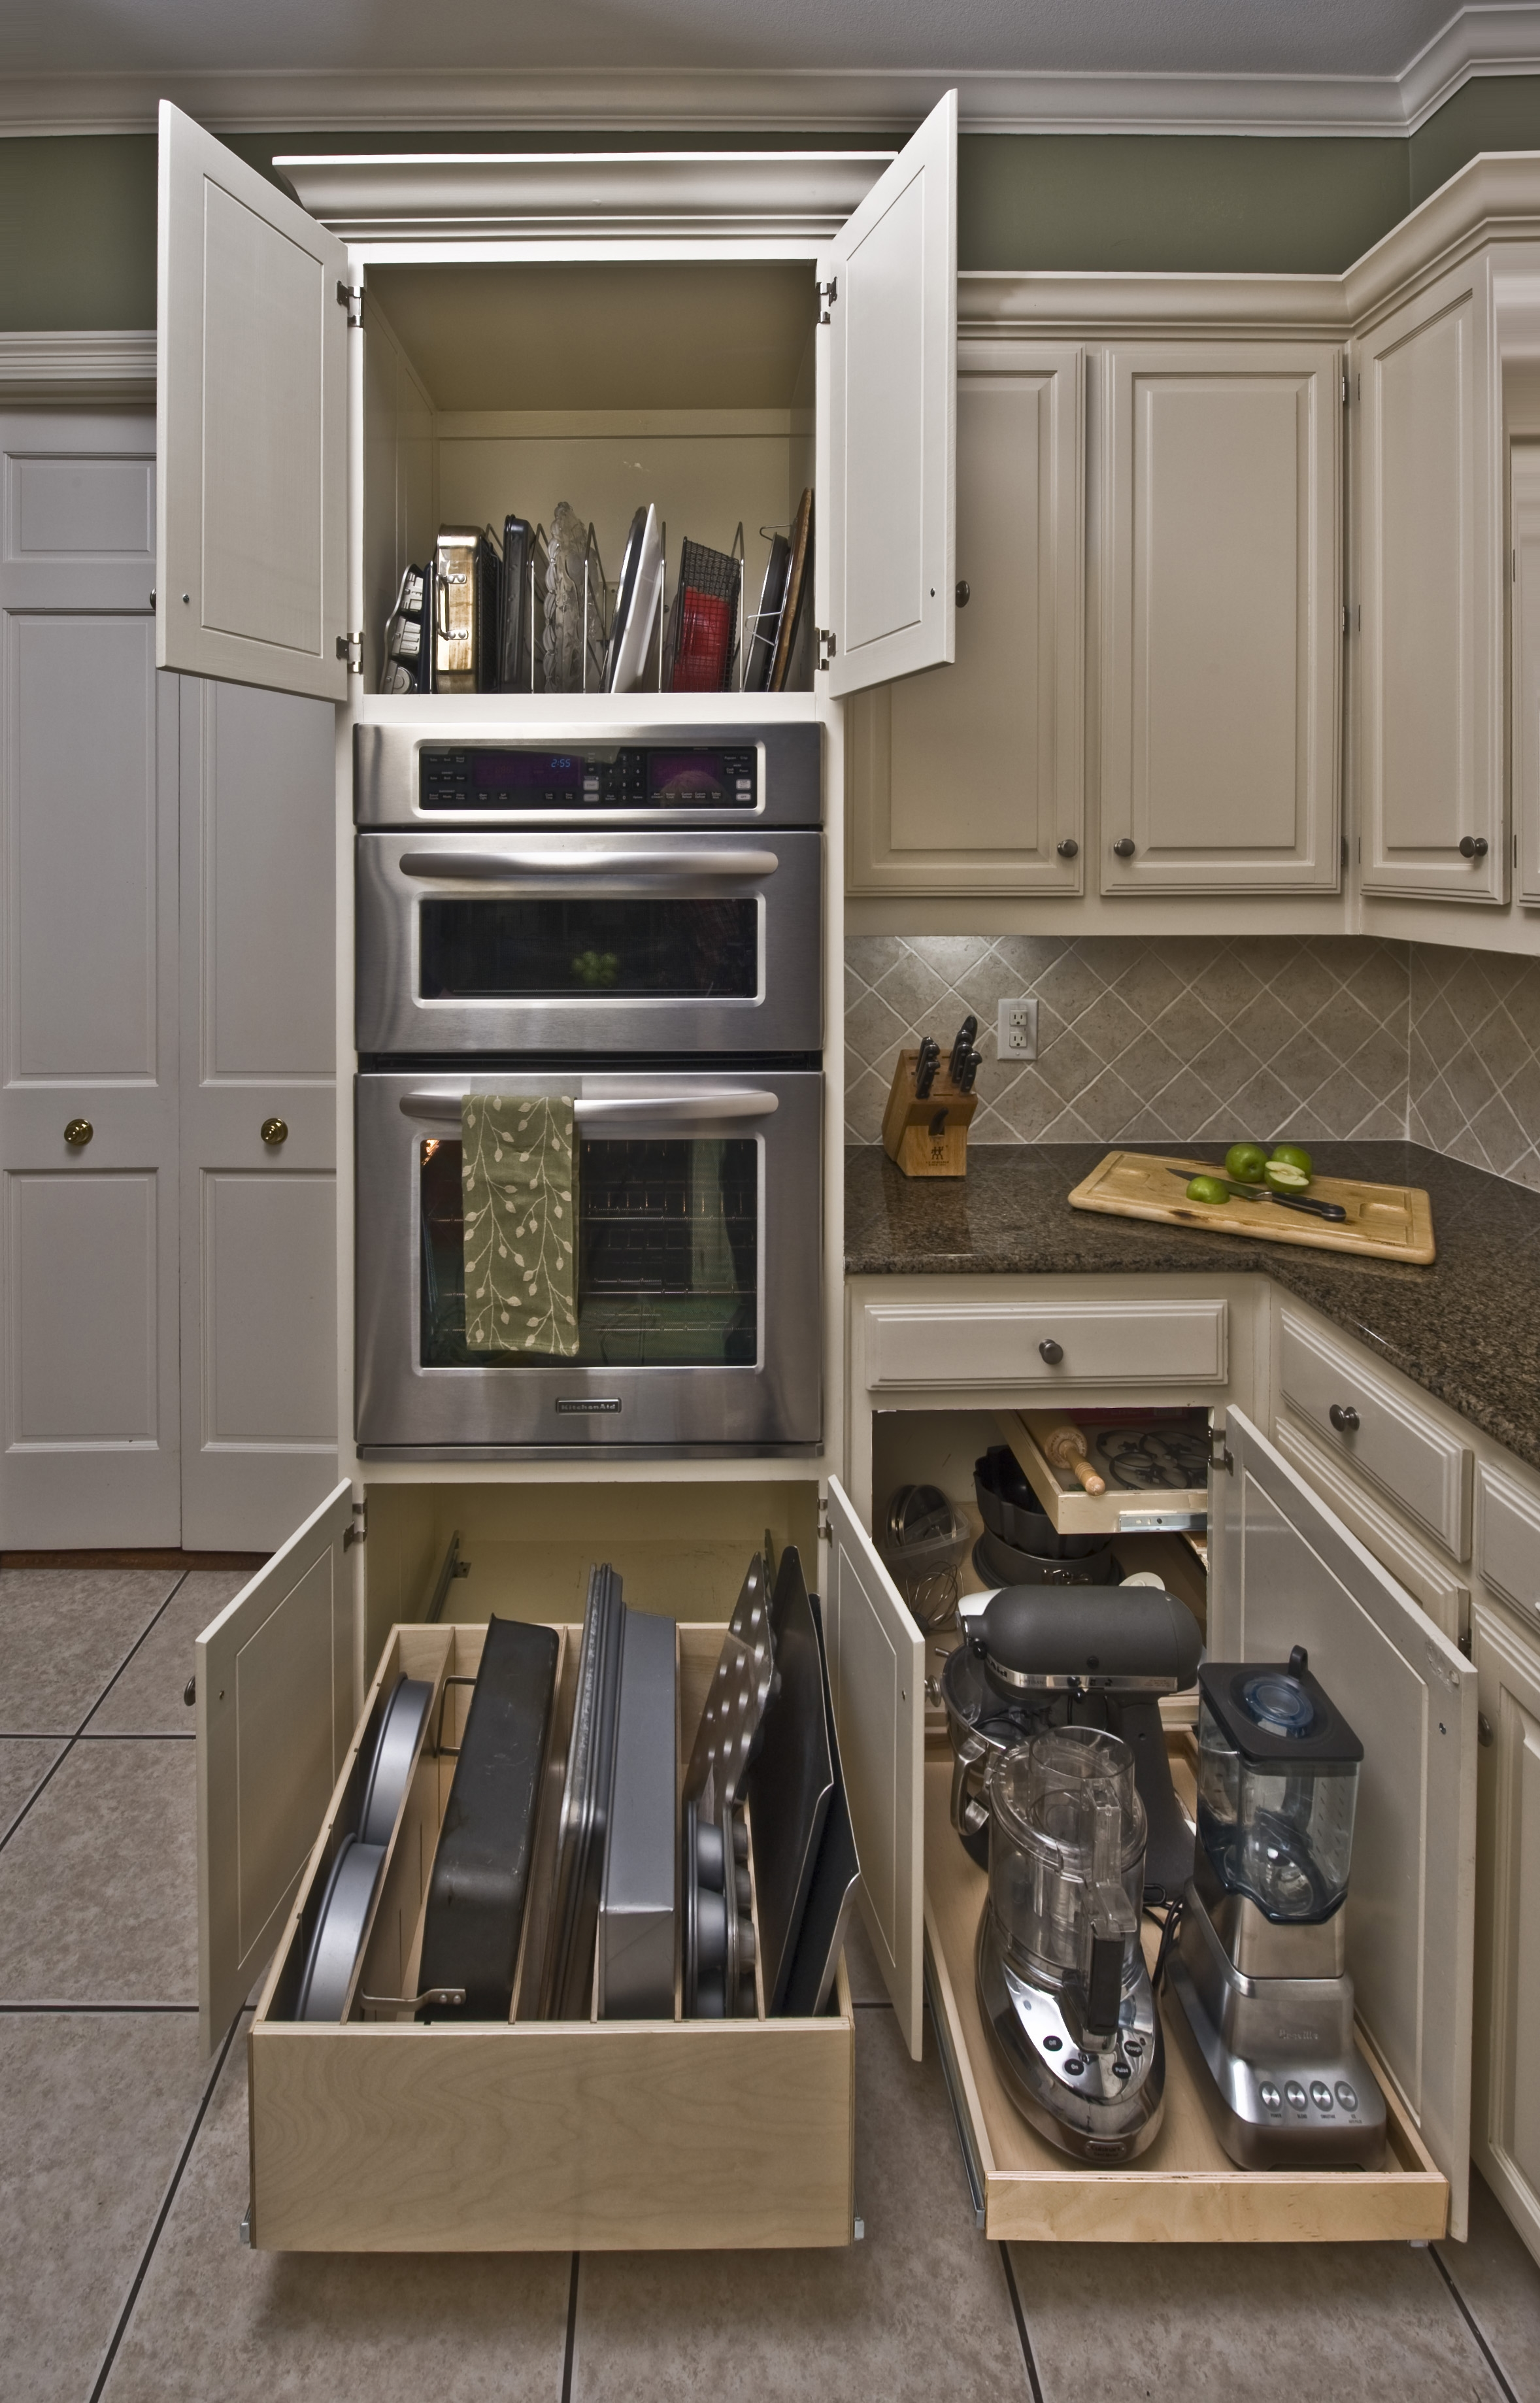 Kitchen Storage Shelves Cabinetskitchen storage cabinets with doors and shelves best home